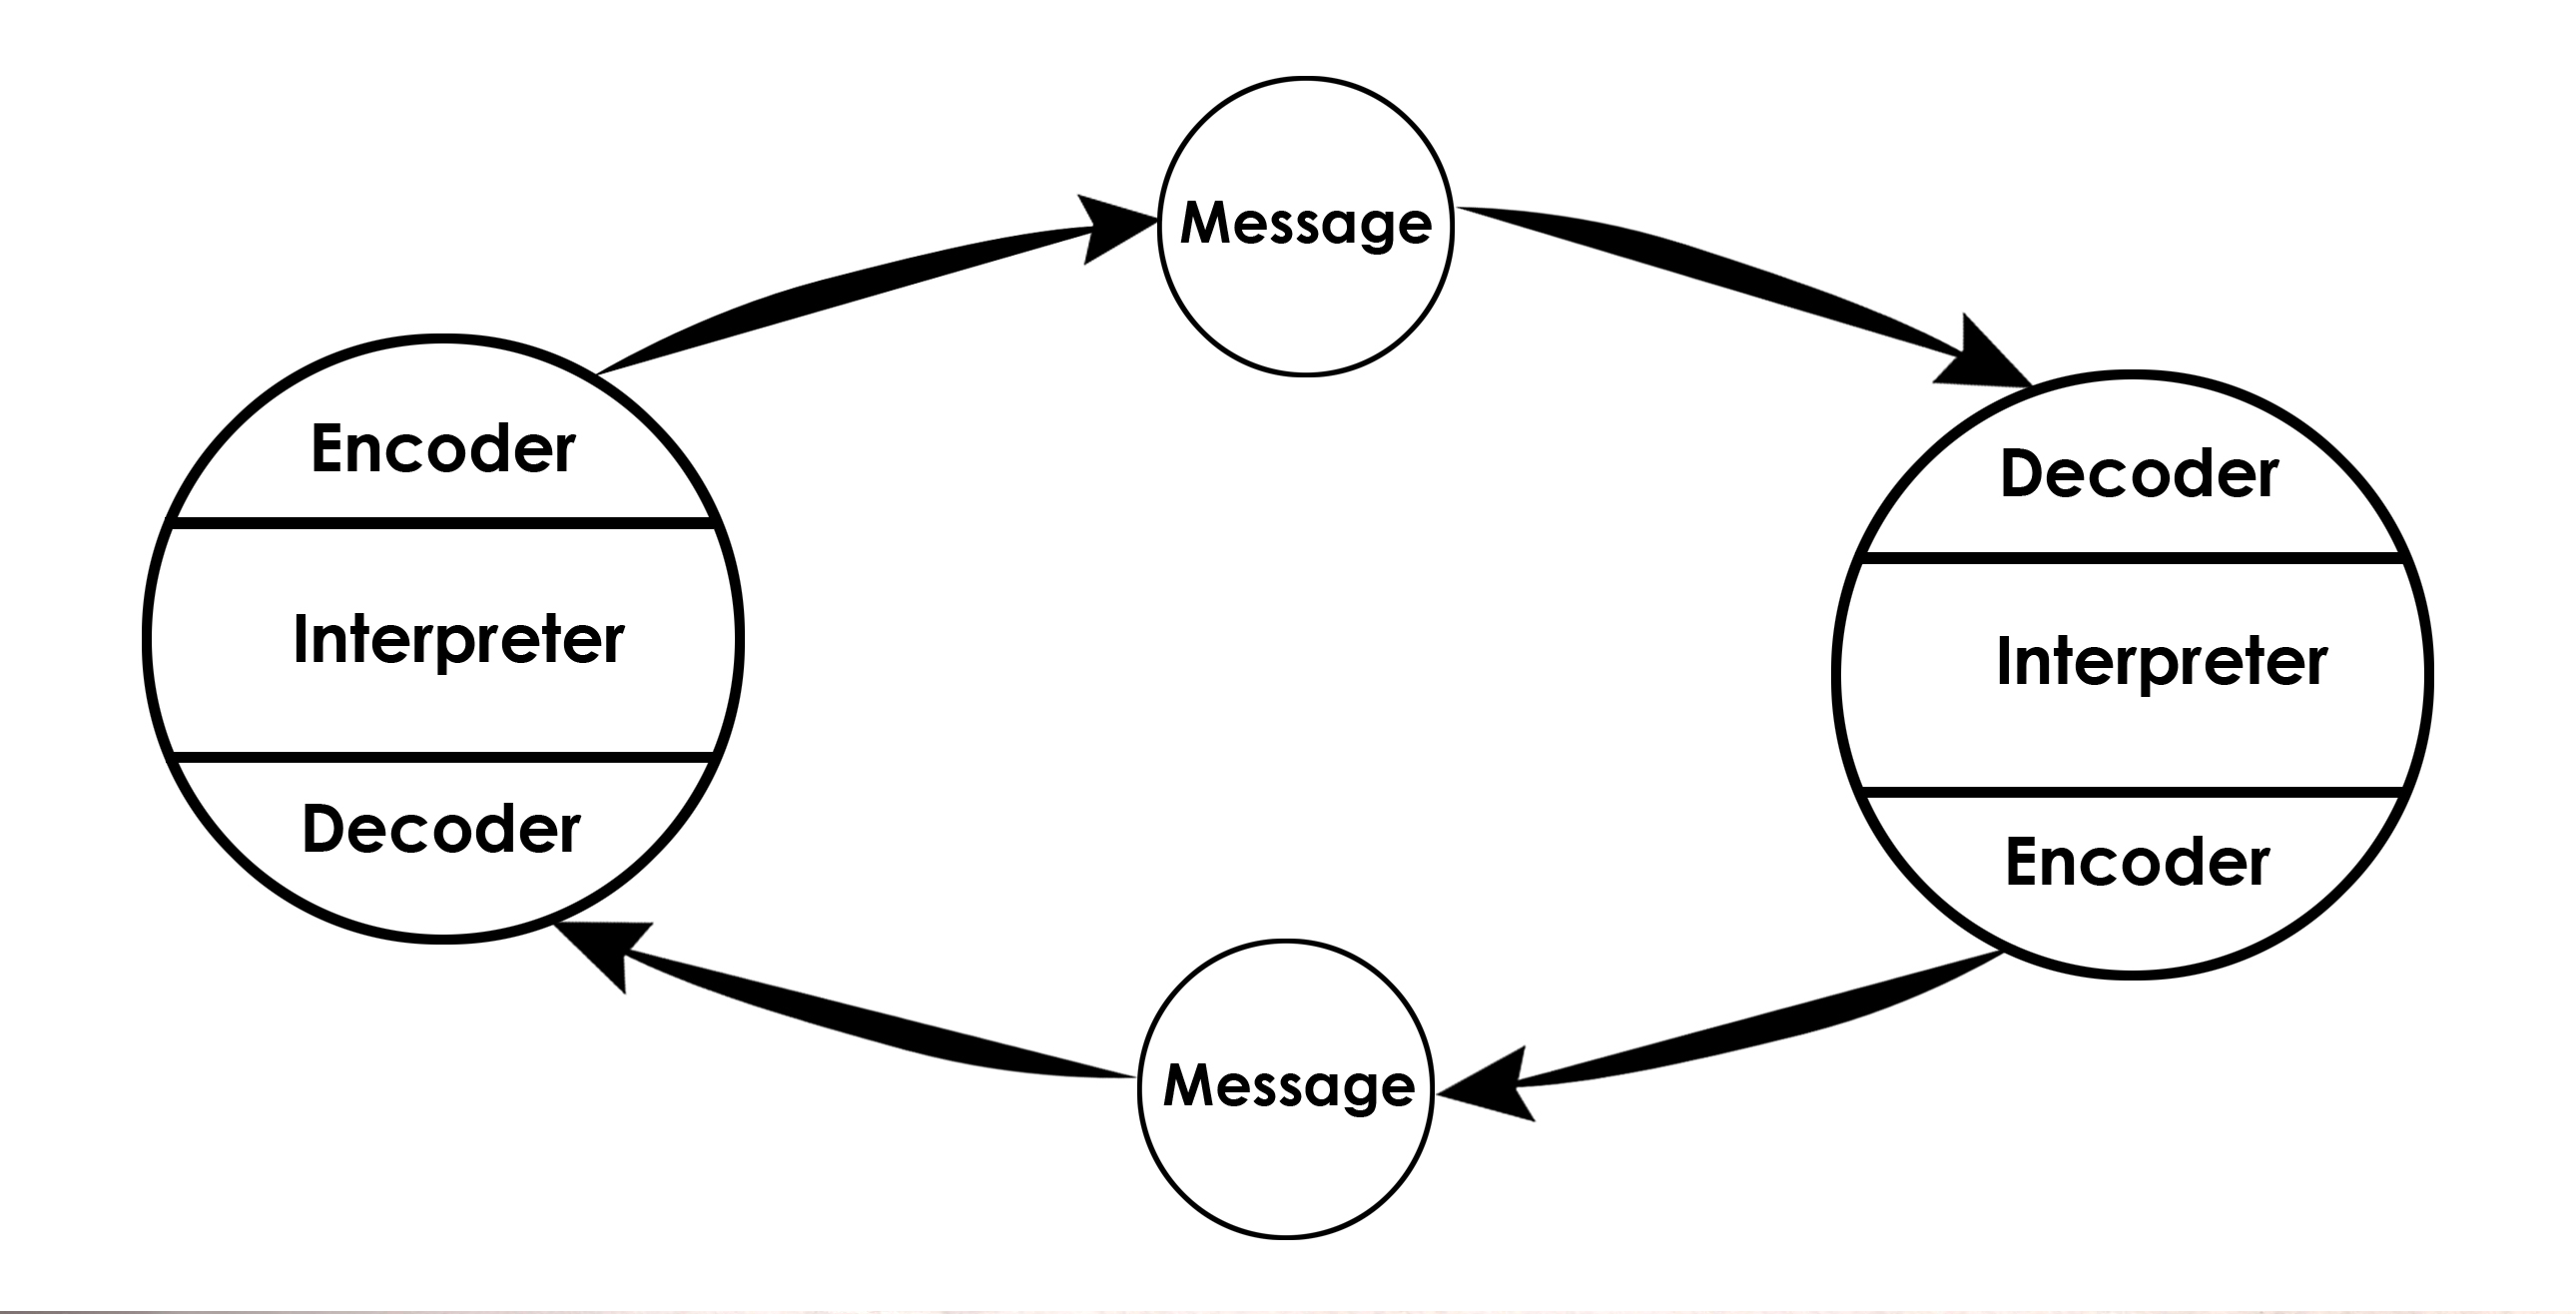 schramm model of communication